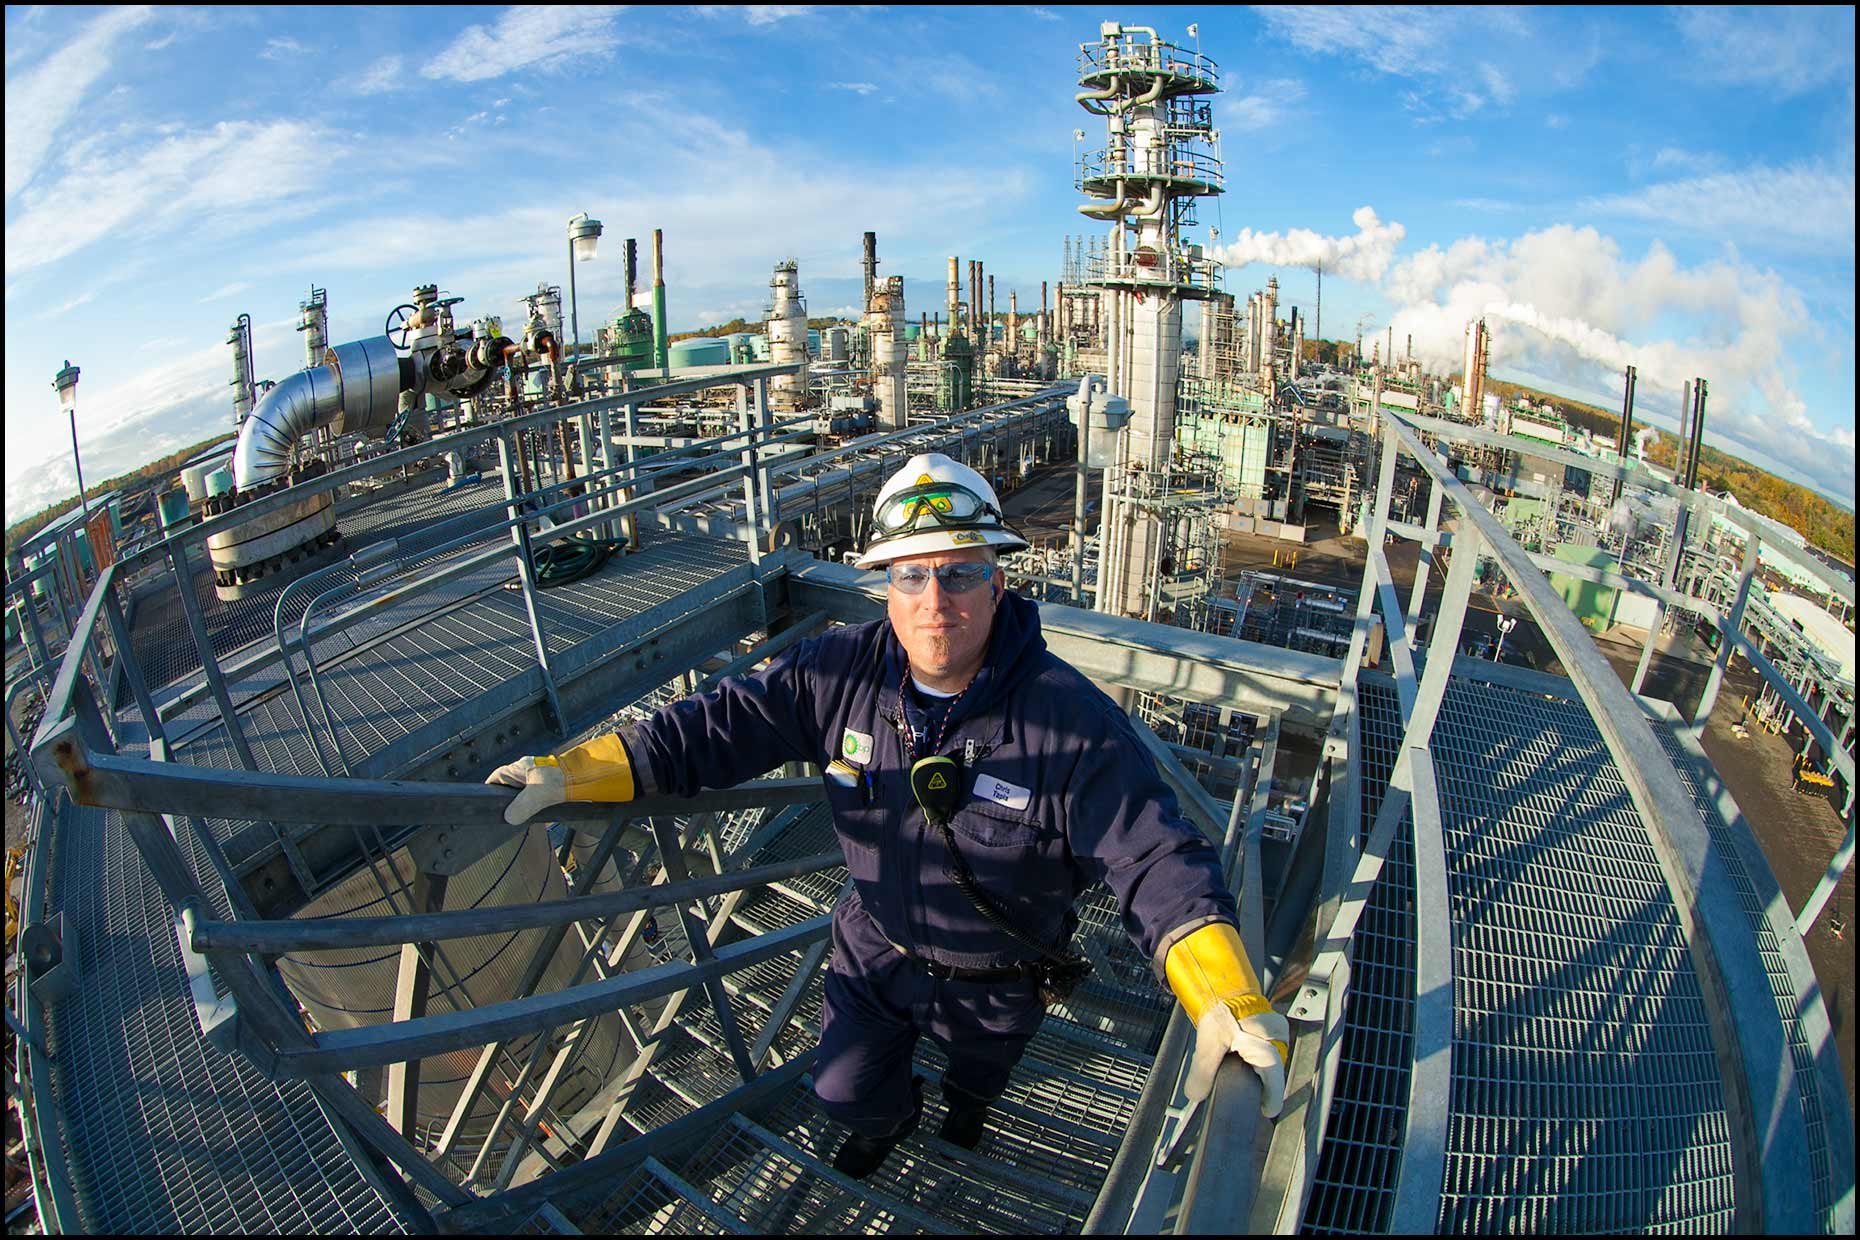 An operator on stairs at the top of a refinery unit, fisheye view.